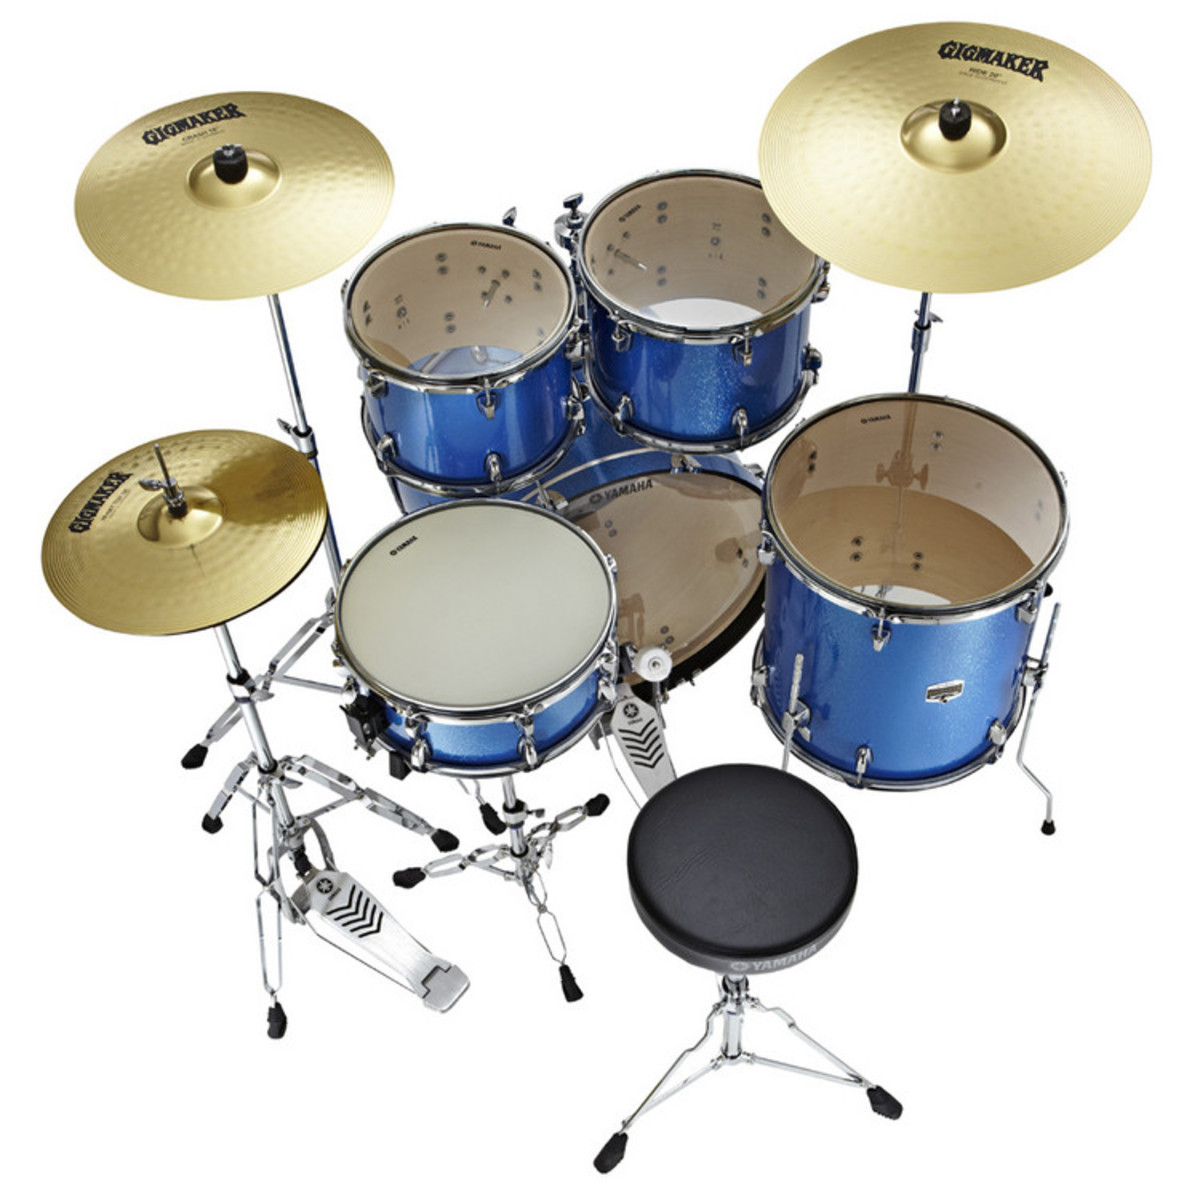 Yamaha Gigmaker Drum Kit With Cymbals